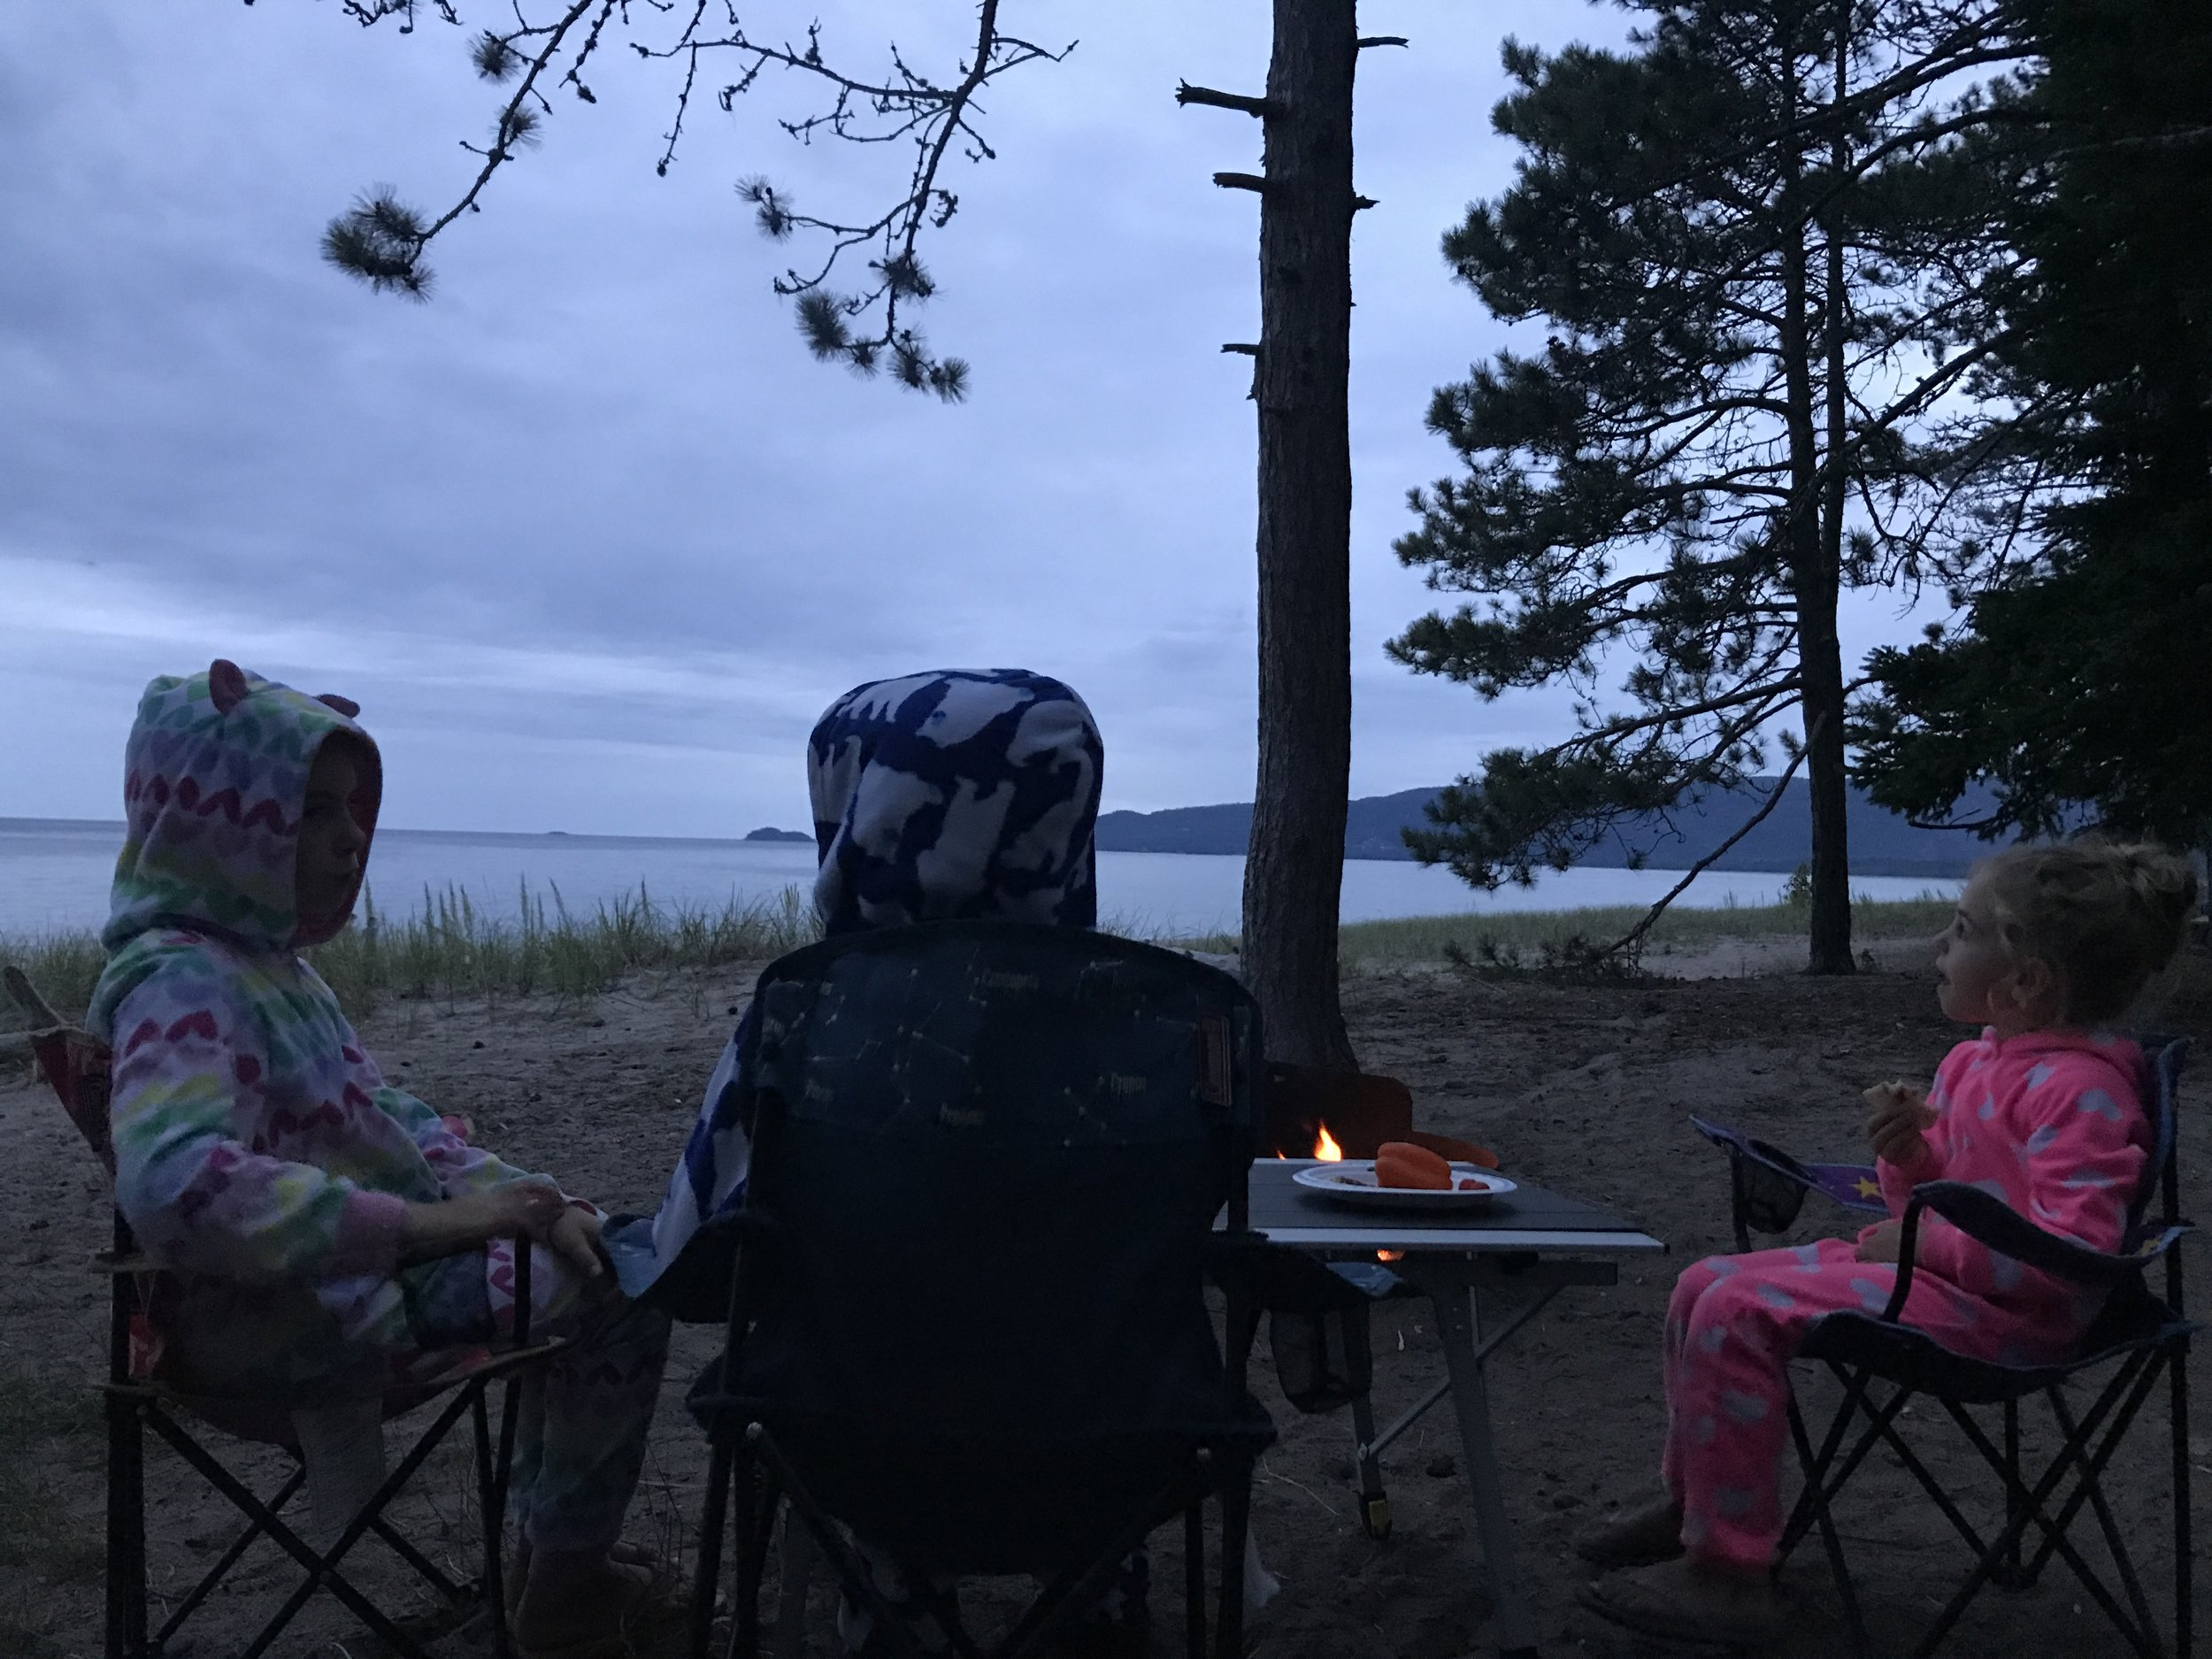 Late night snacks by a campfire on Lake Superior. All dressed and ready for bed.